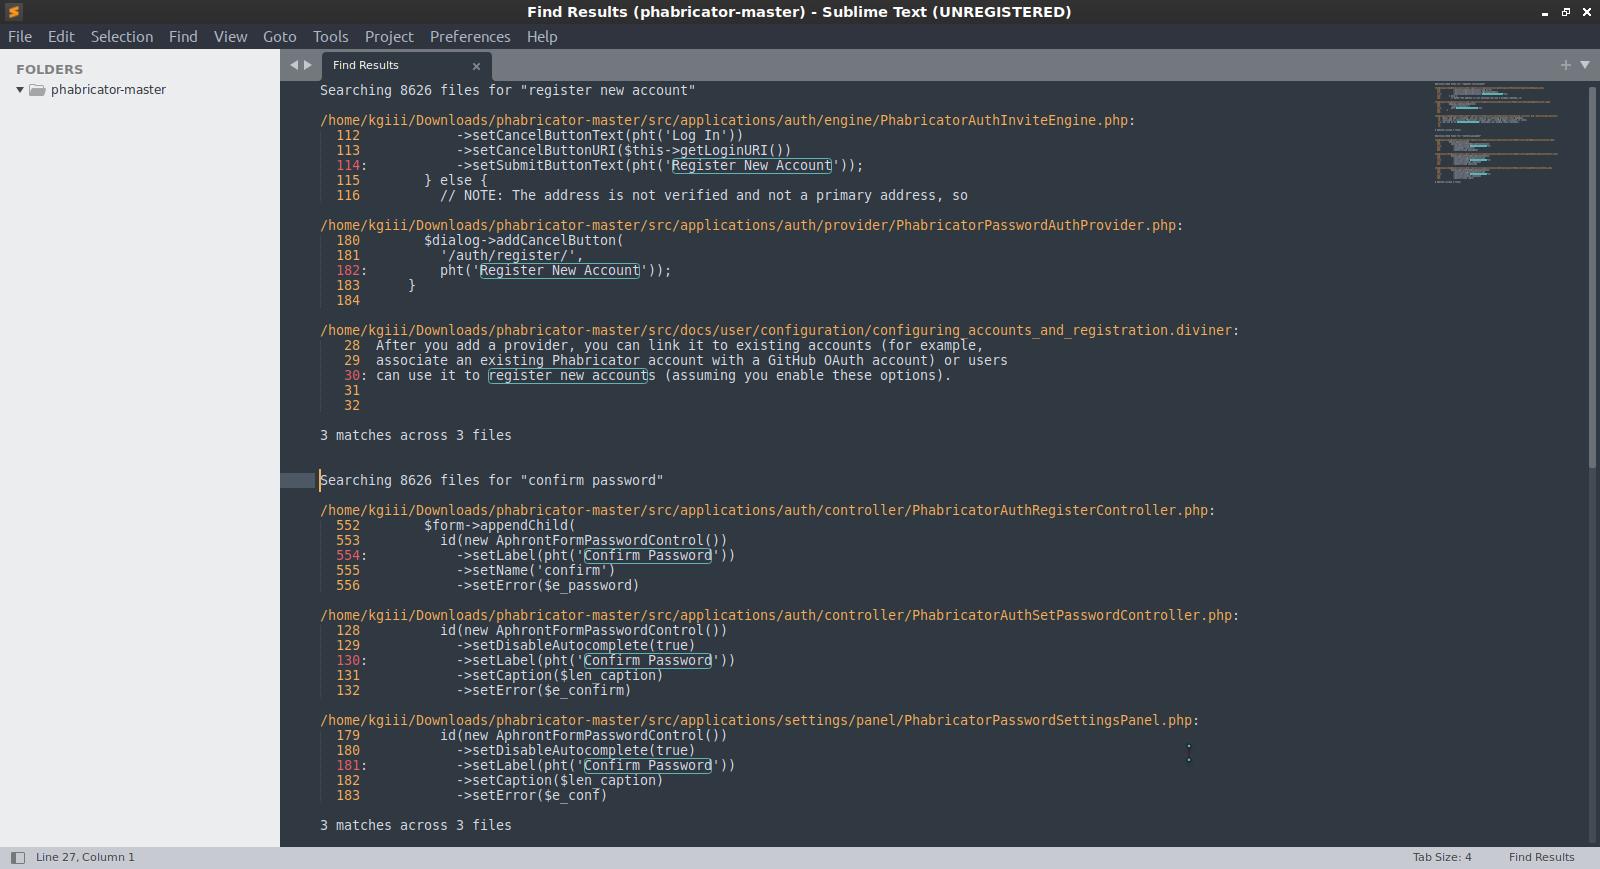 sublime text finding text in files